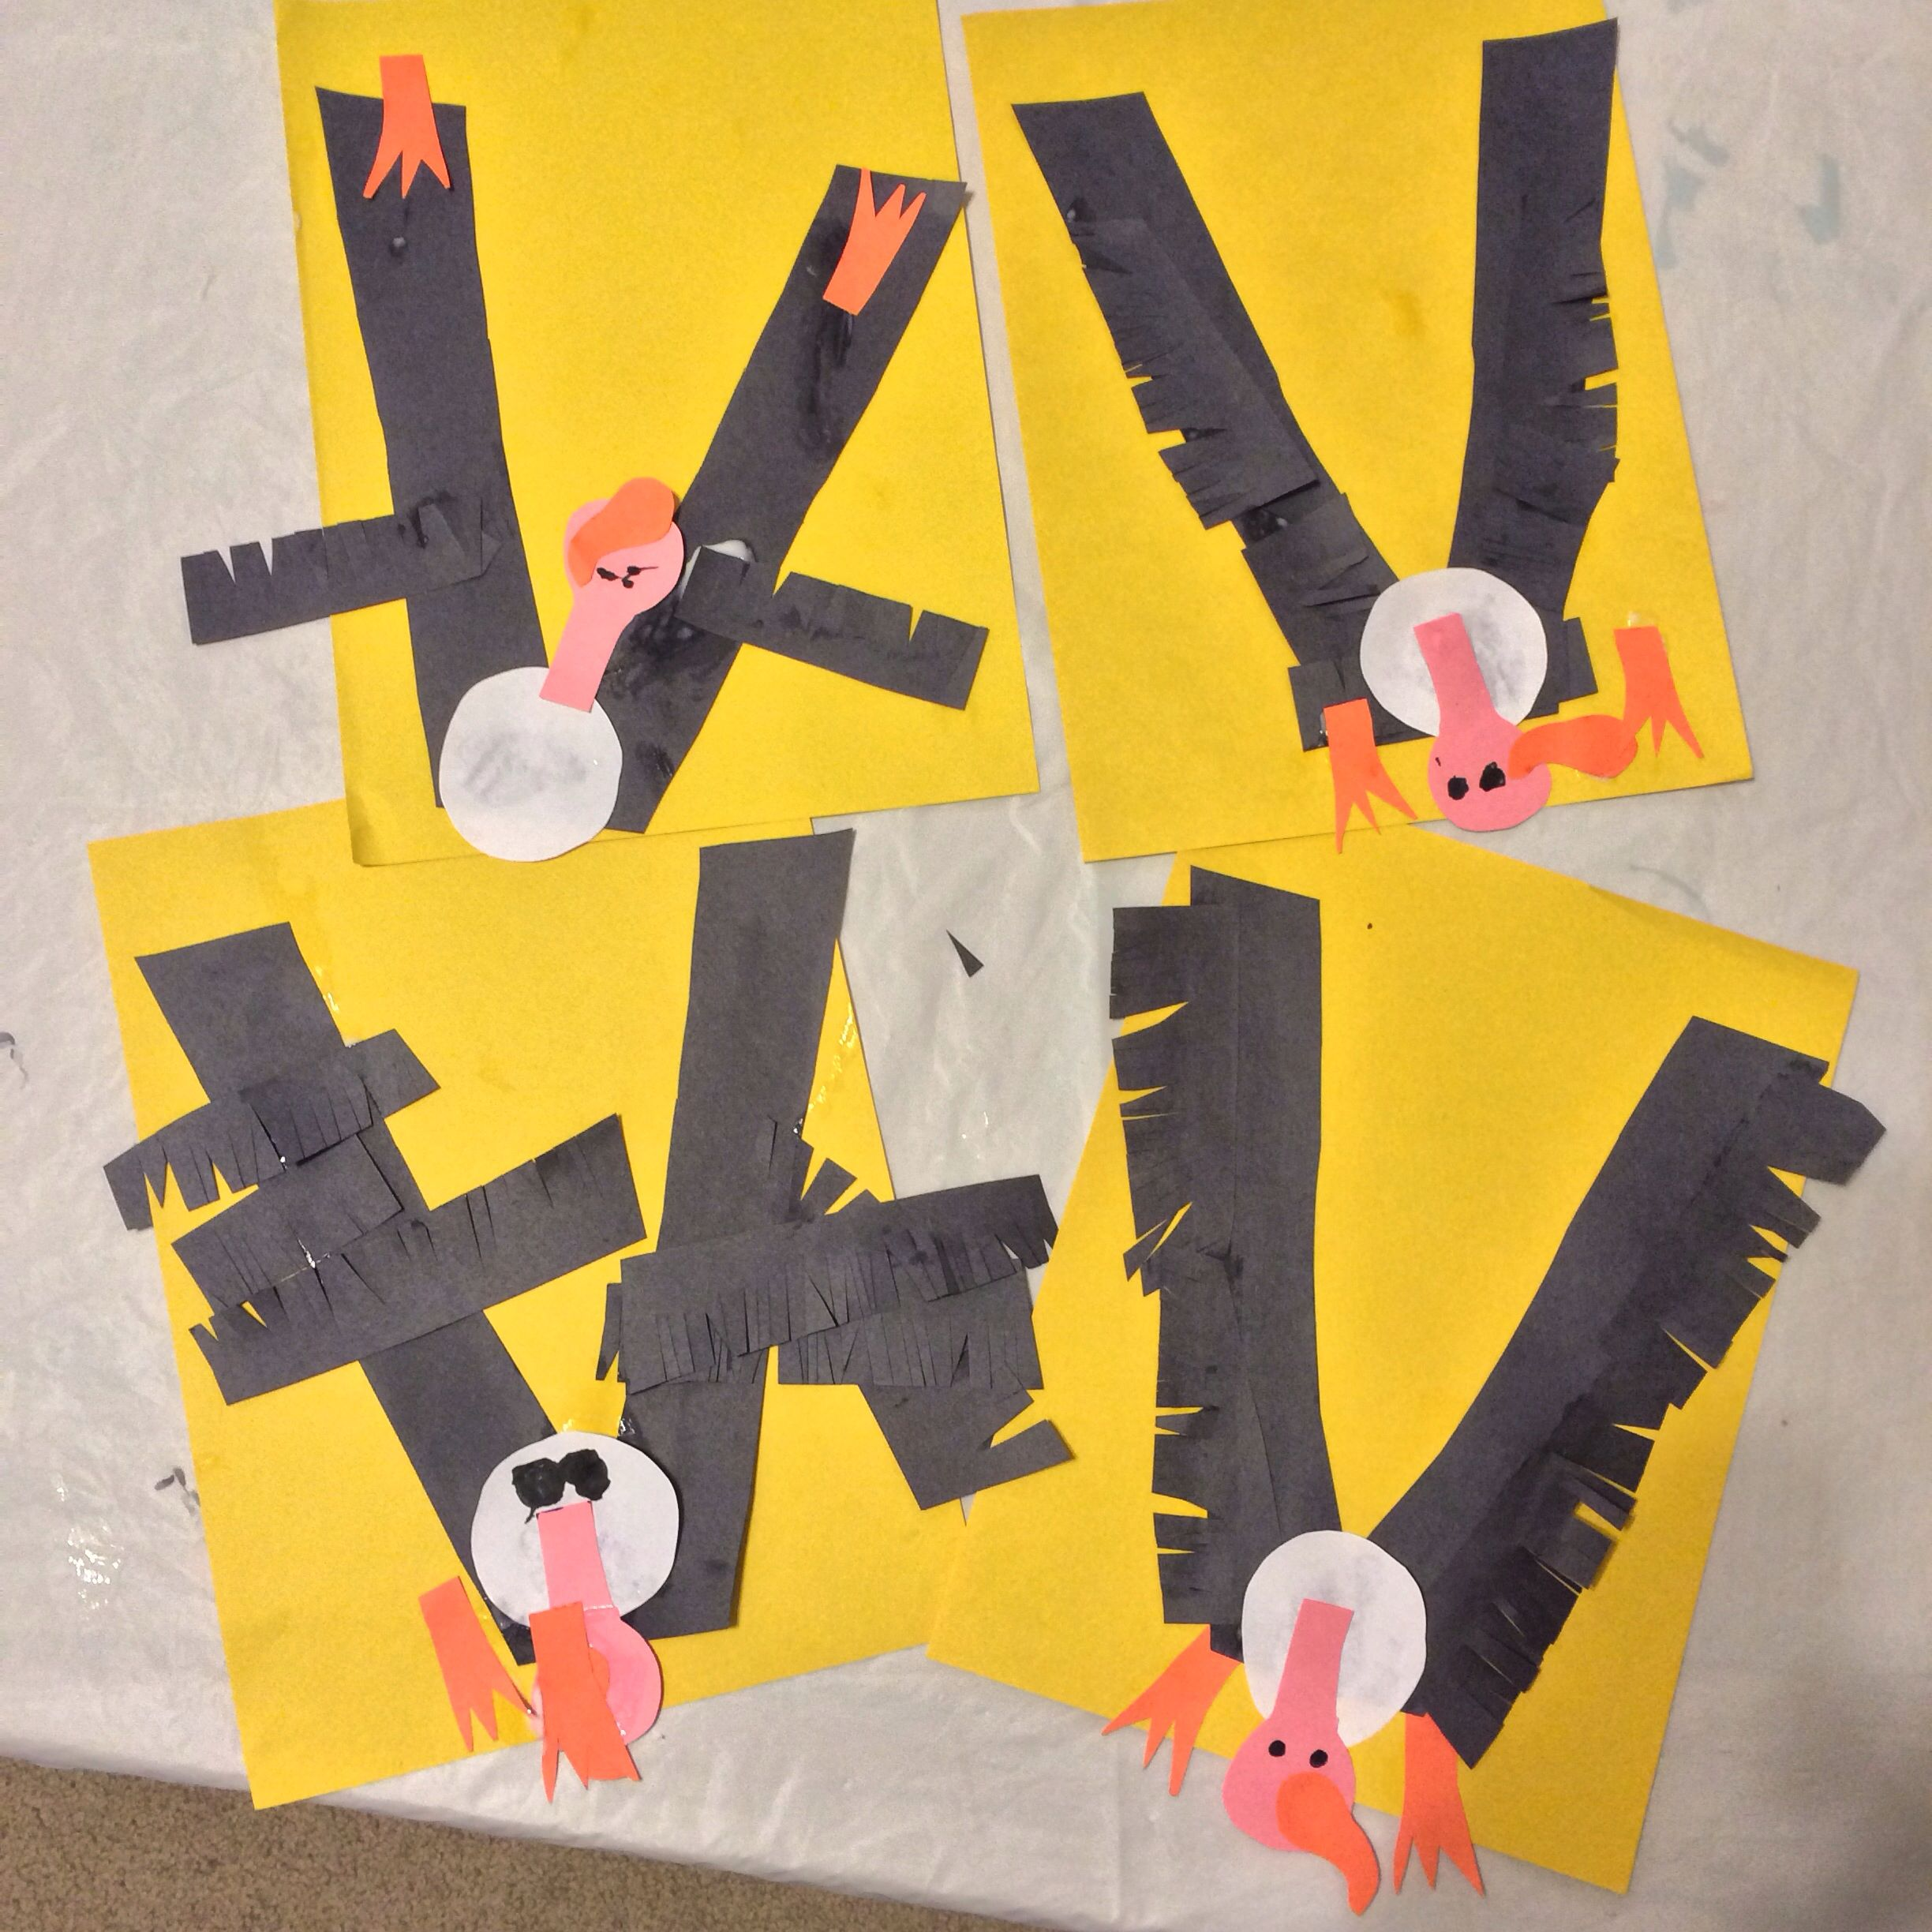 V Is For Vultures Great Letter Craft For Preschoolers And